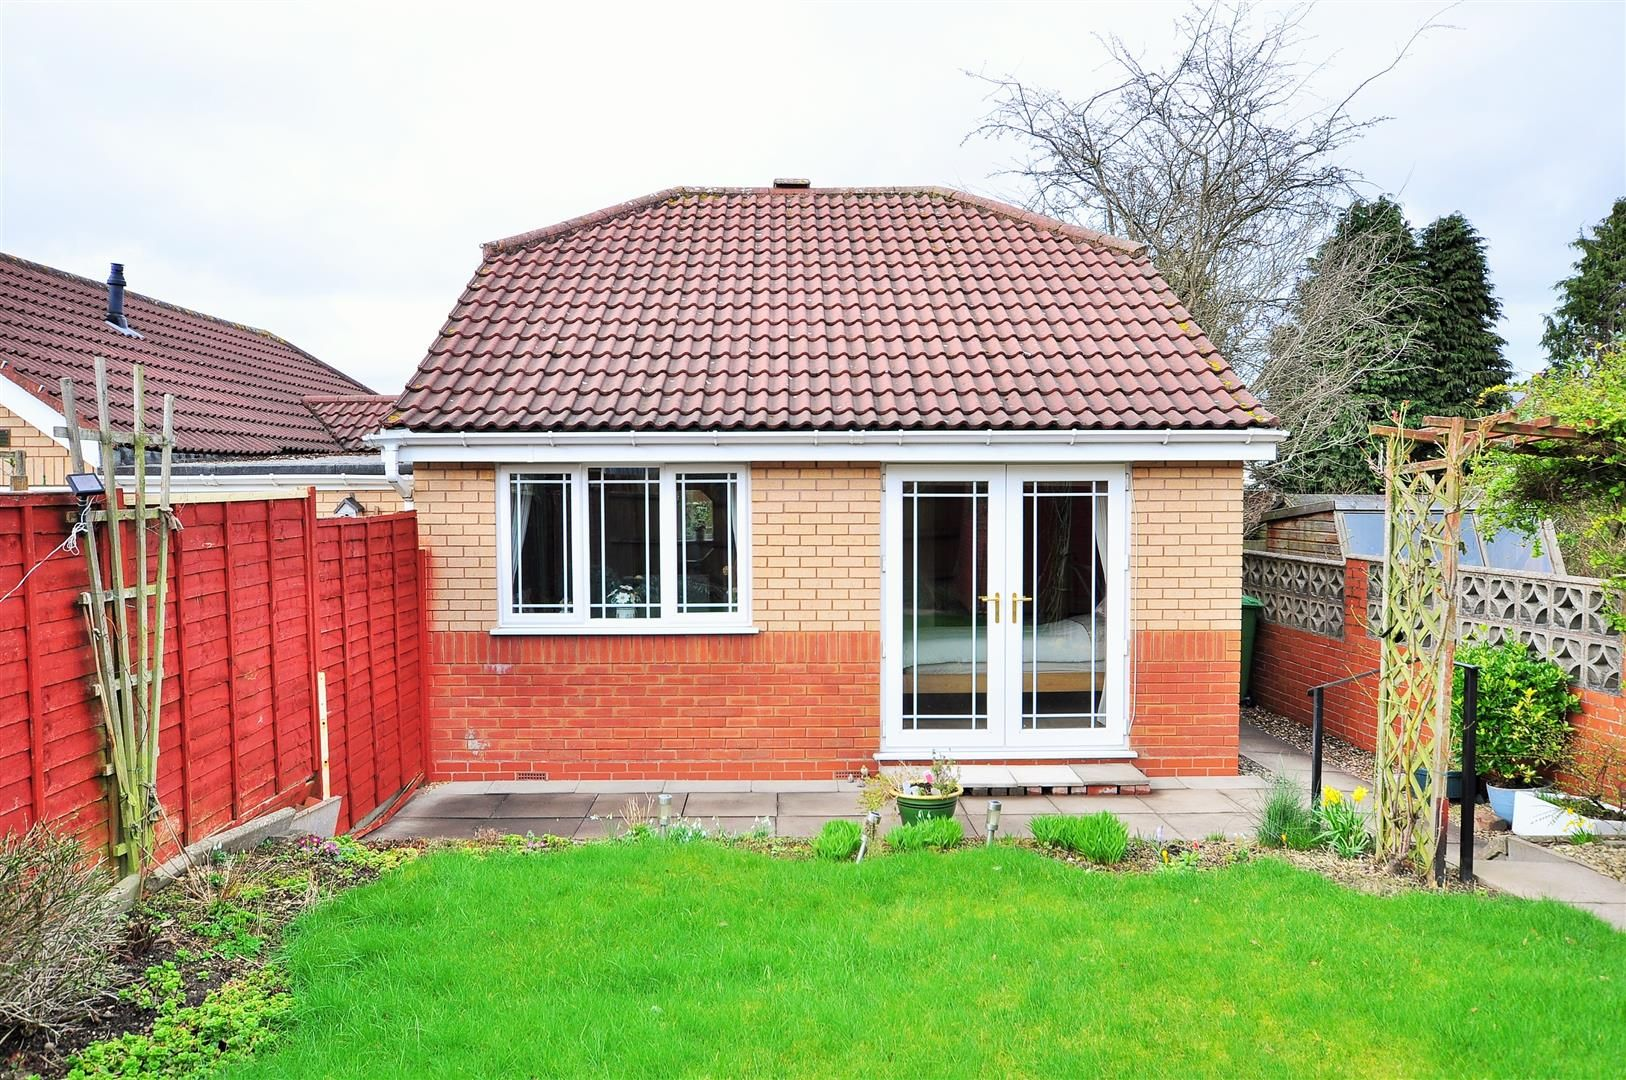 2 bed detached-bungalow for sale in Hurst Green 11